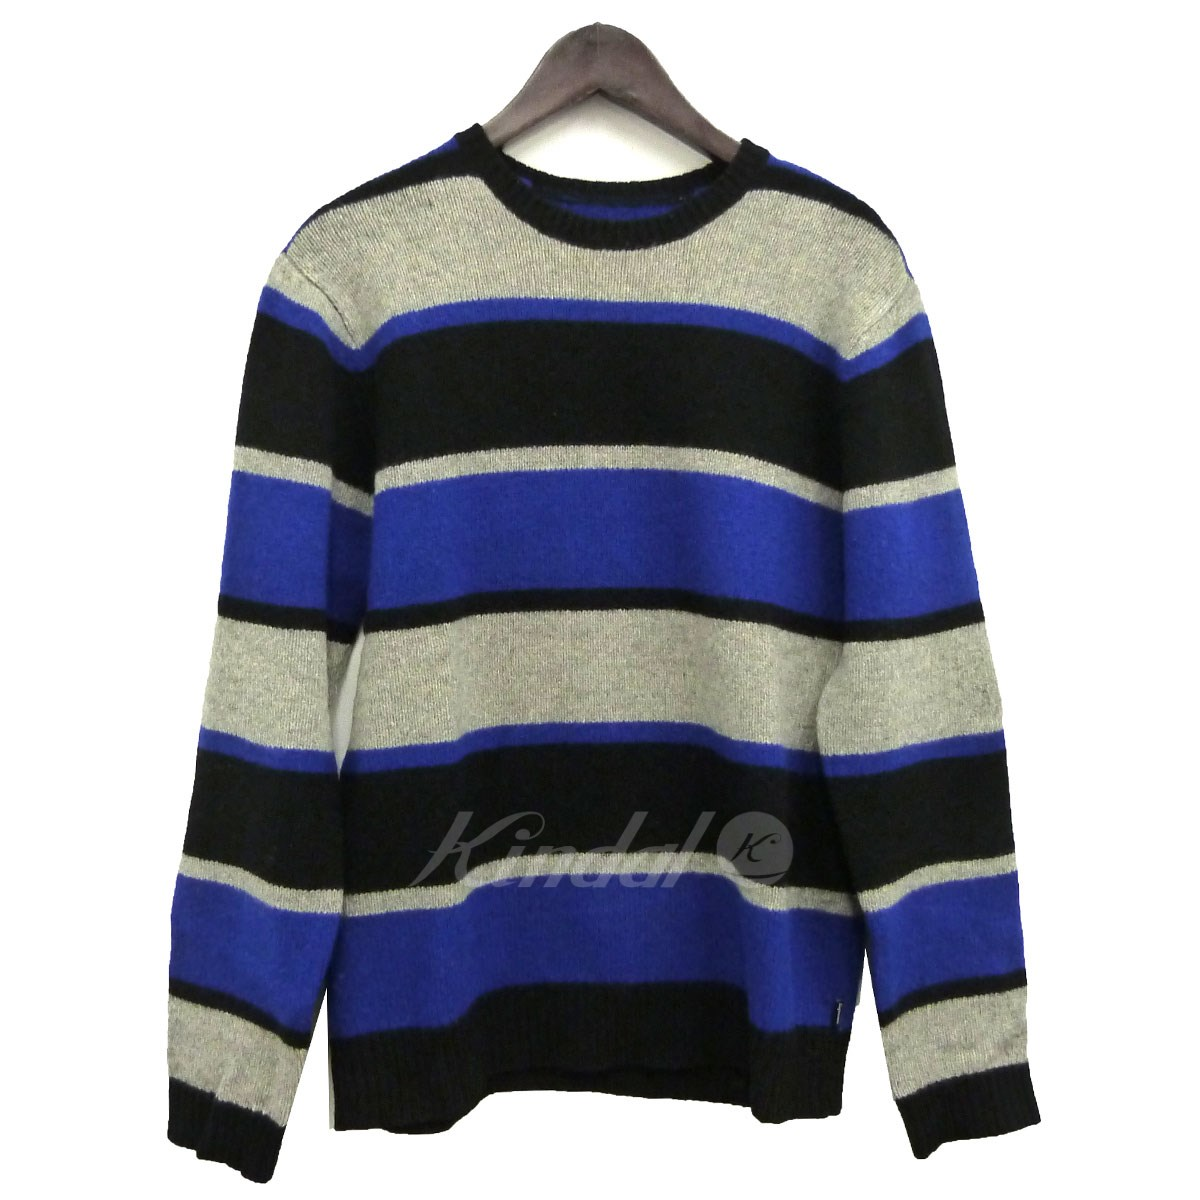 【中古】SUPREME 08AW「Three Color Striped Sweater」ボーダーニット 【送料無料】 【090337】 【KIND1551】